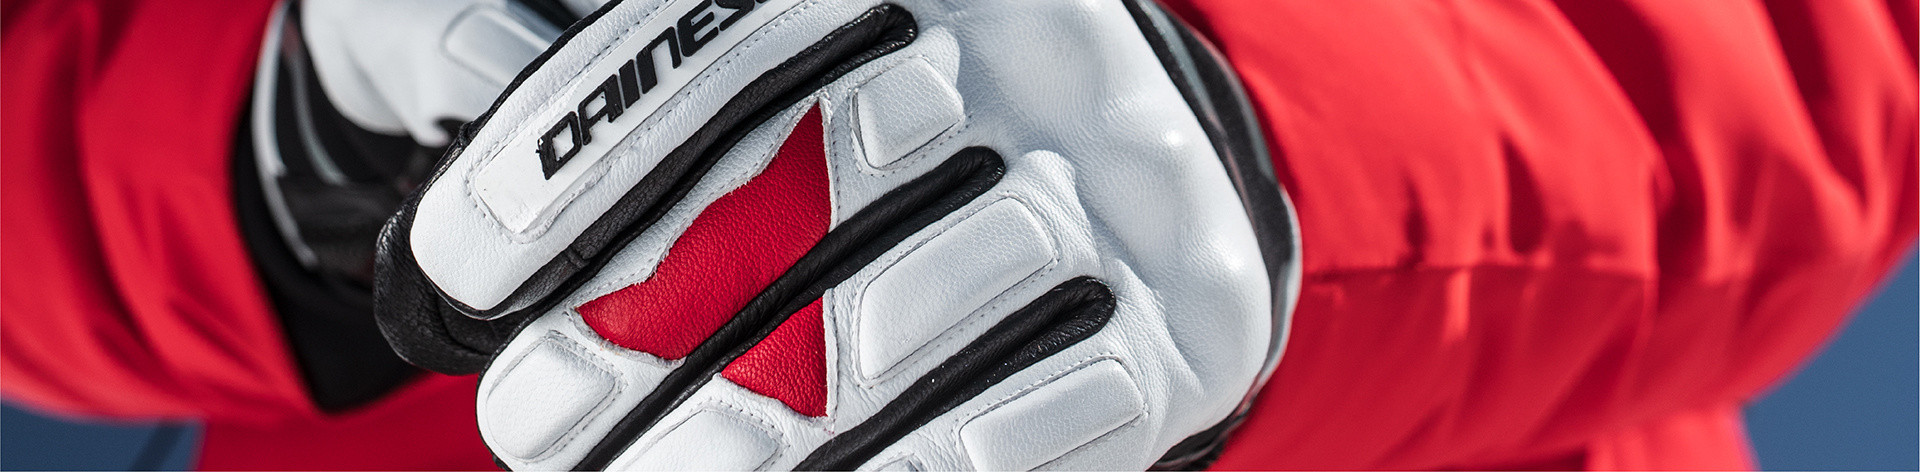 Dainese Winter Sports Gloves